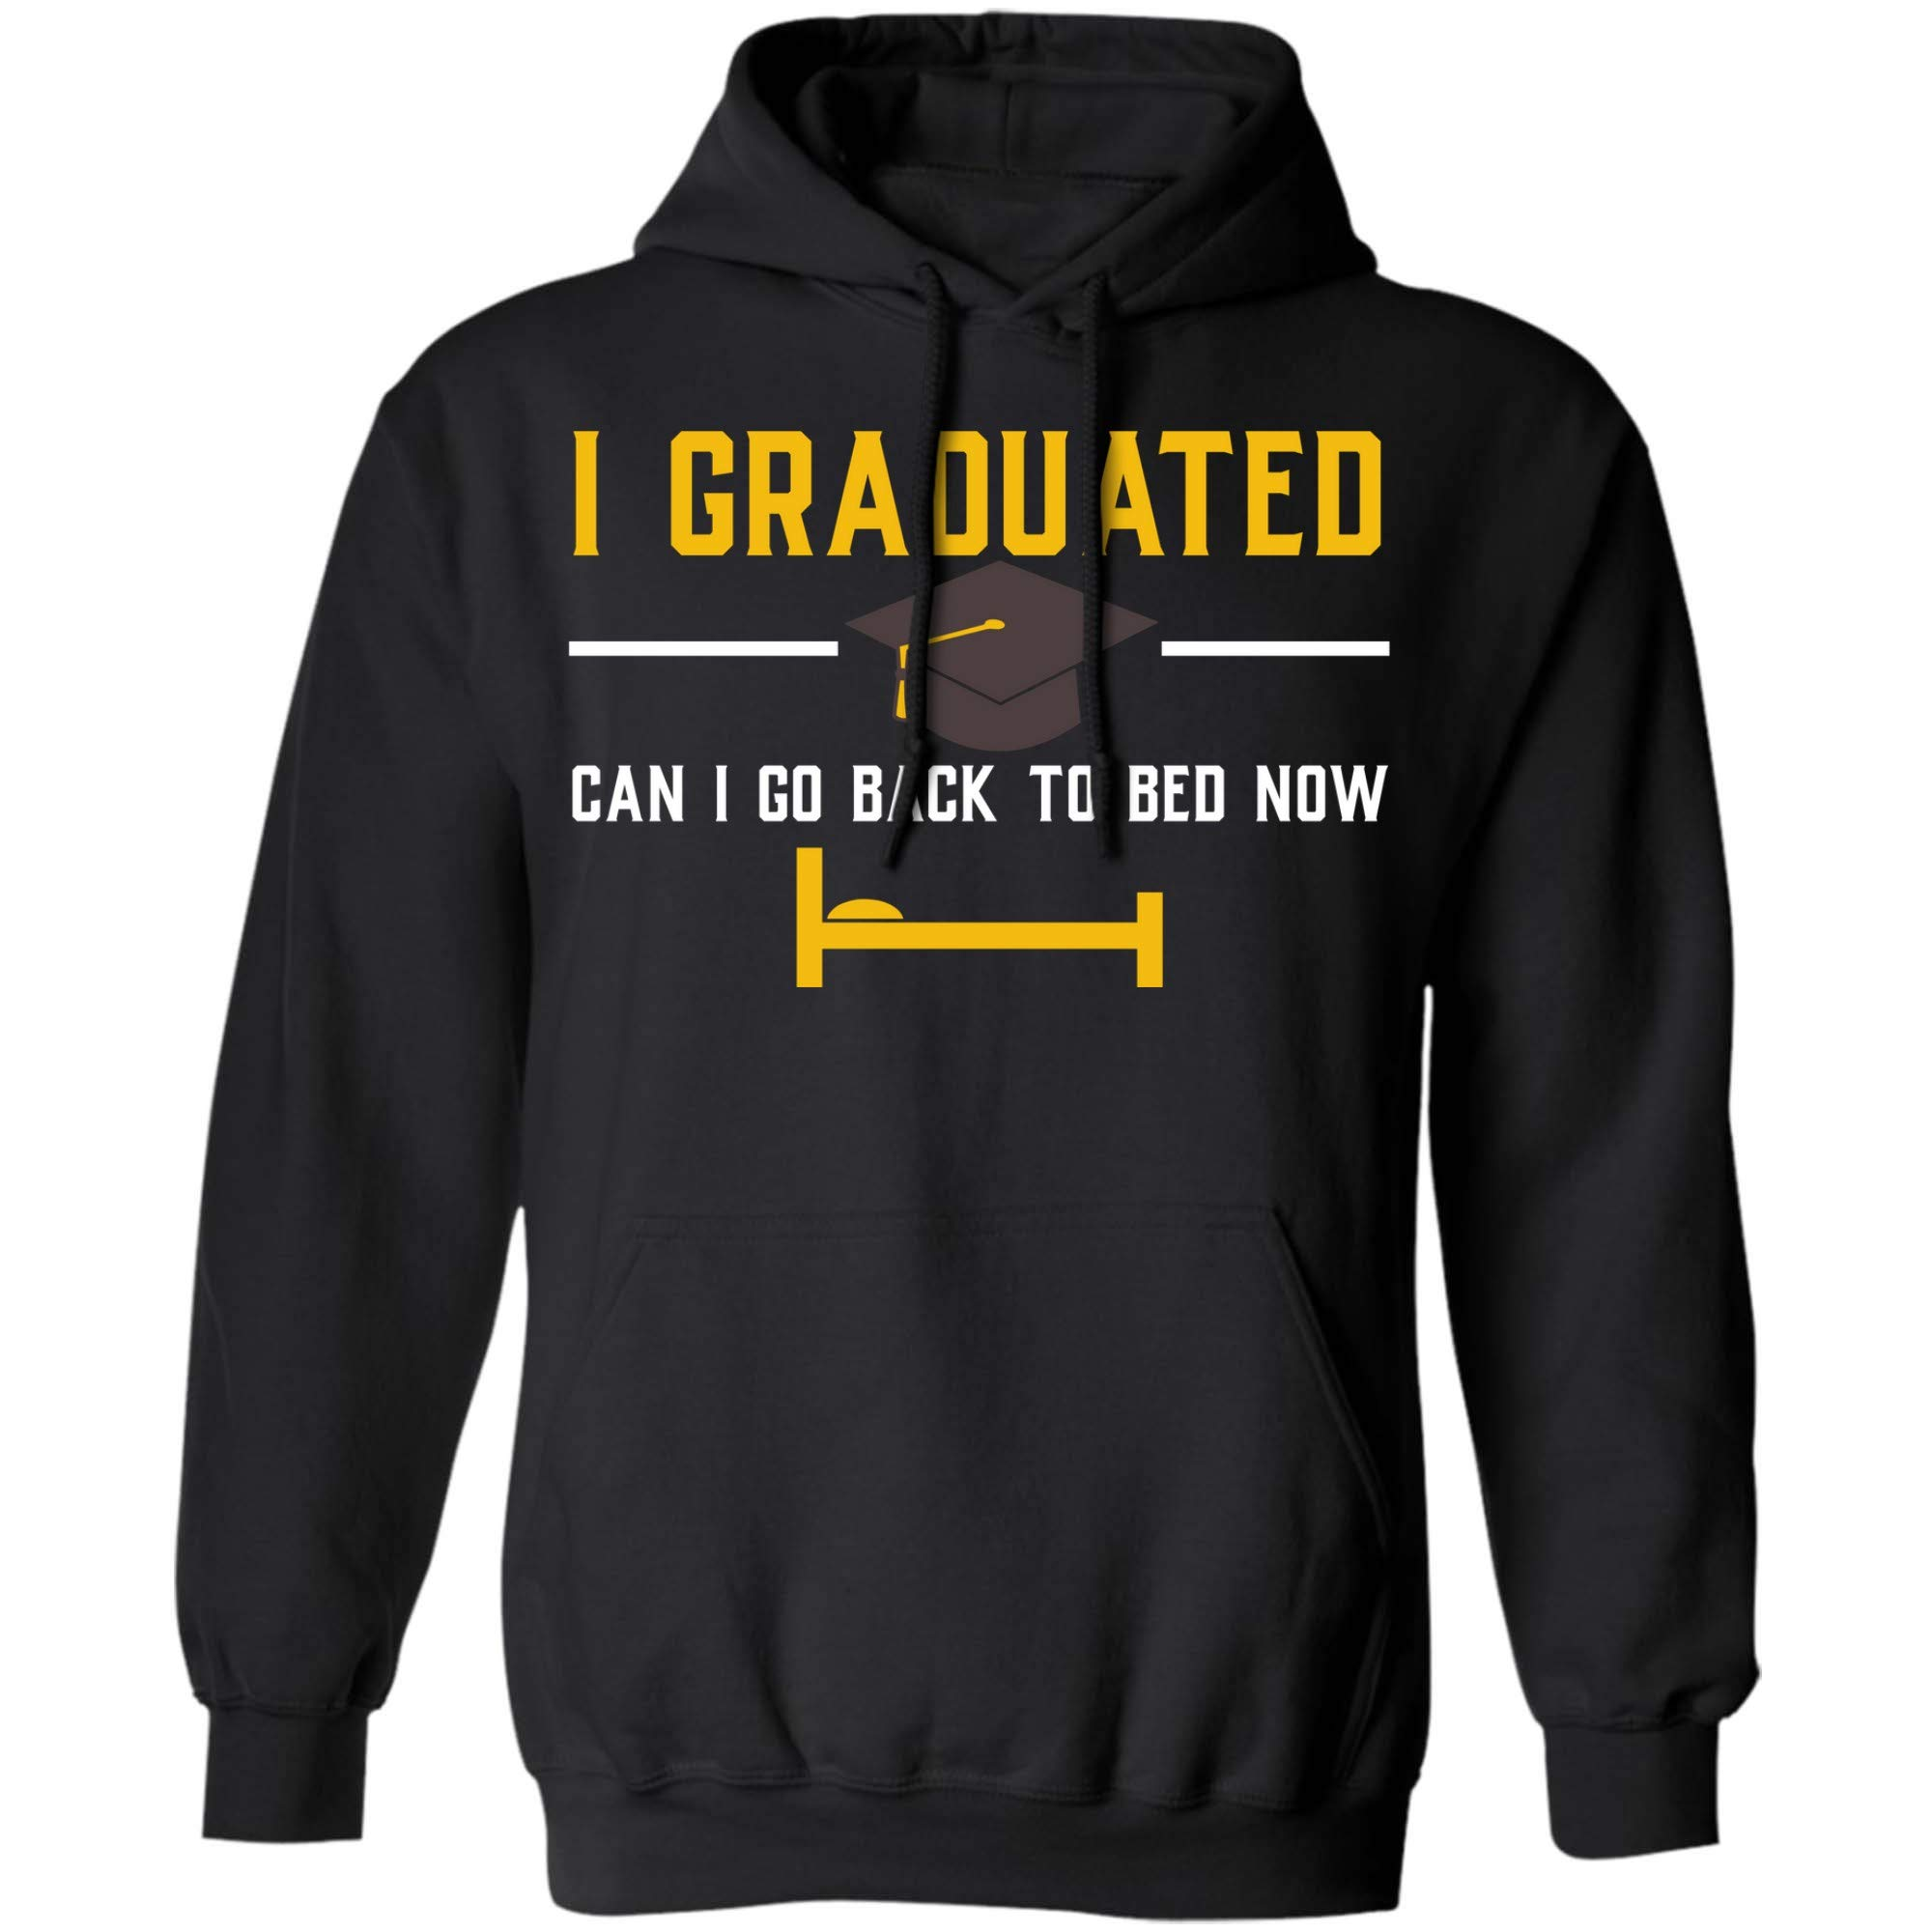 Can I Go Back To Bed Tshirt Fun Graduation Gift For Him Her